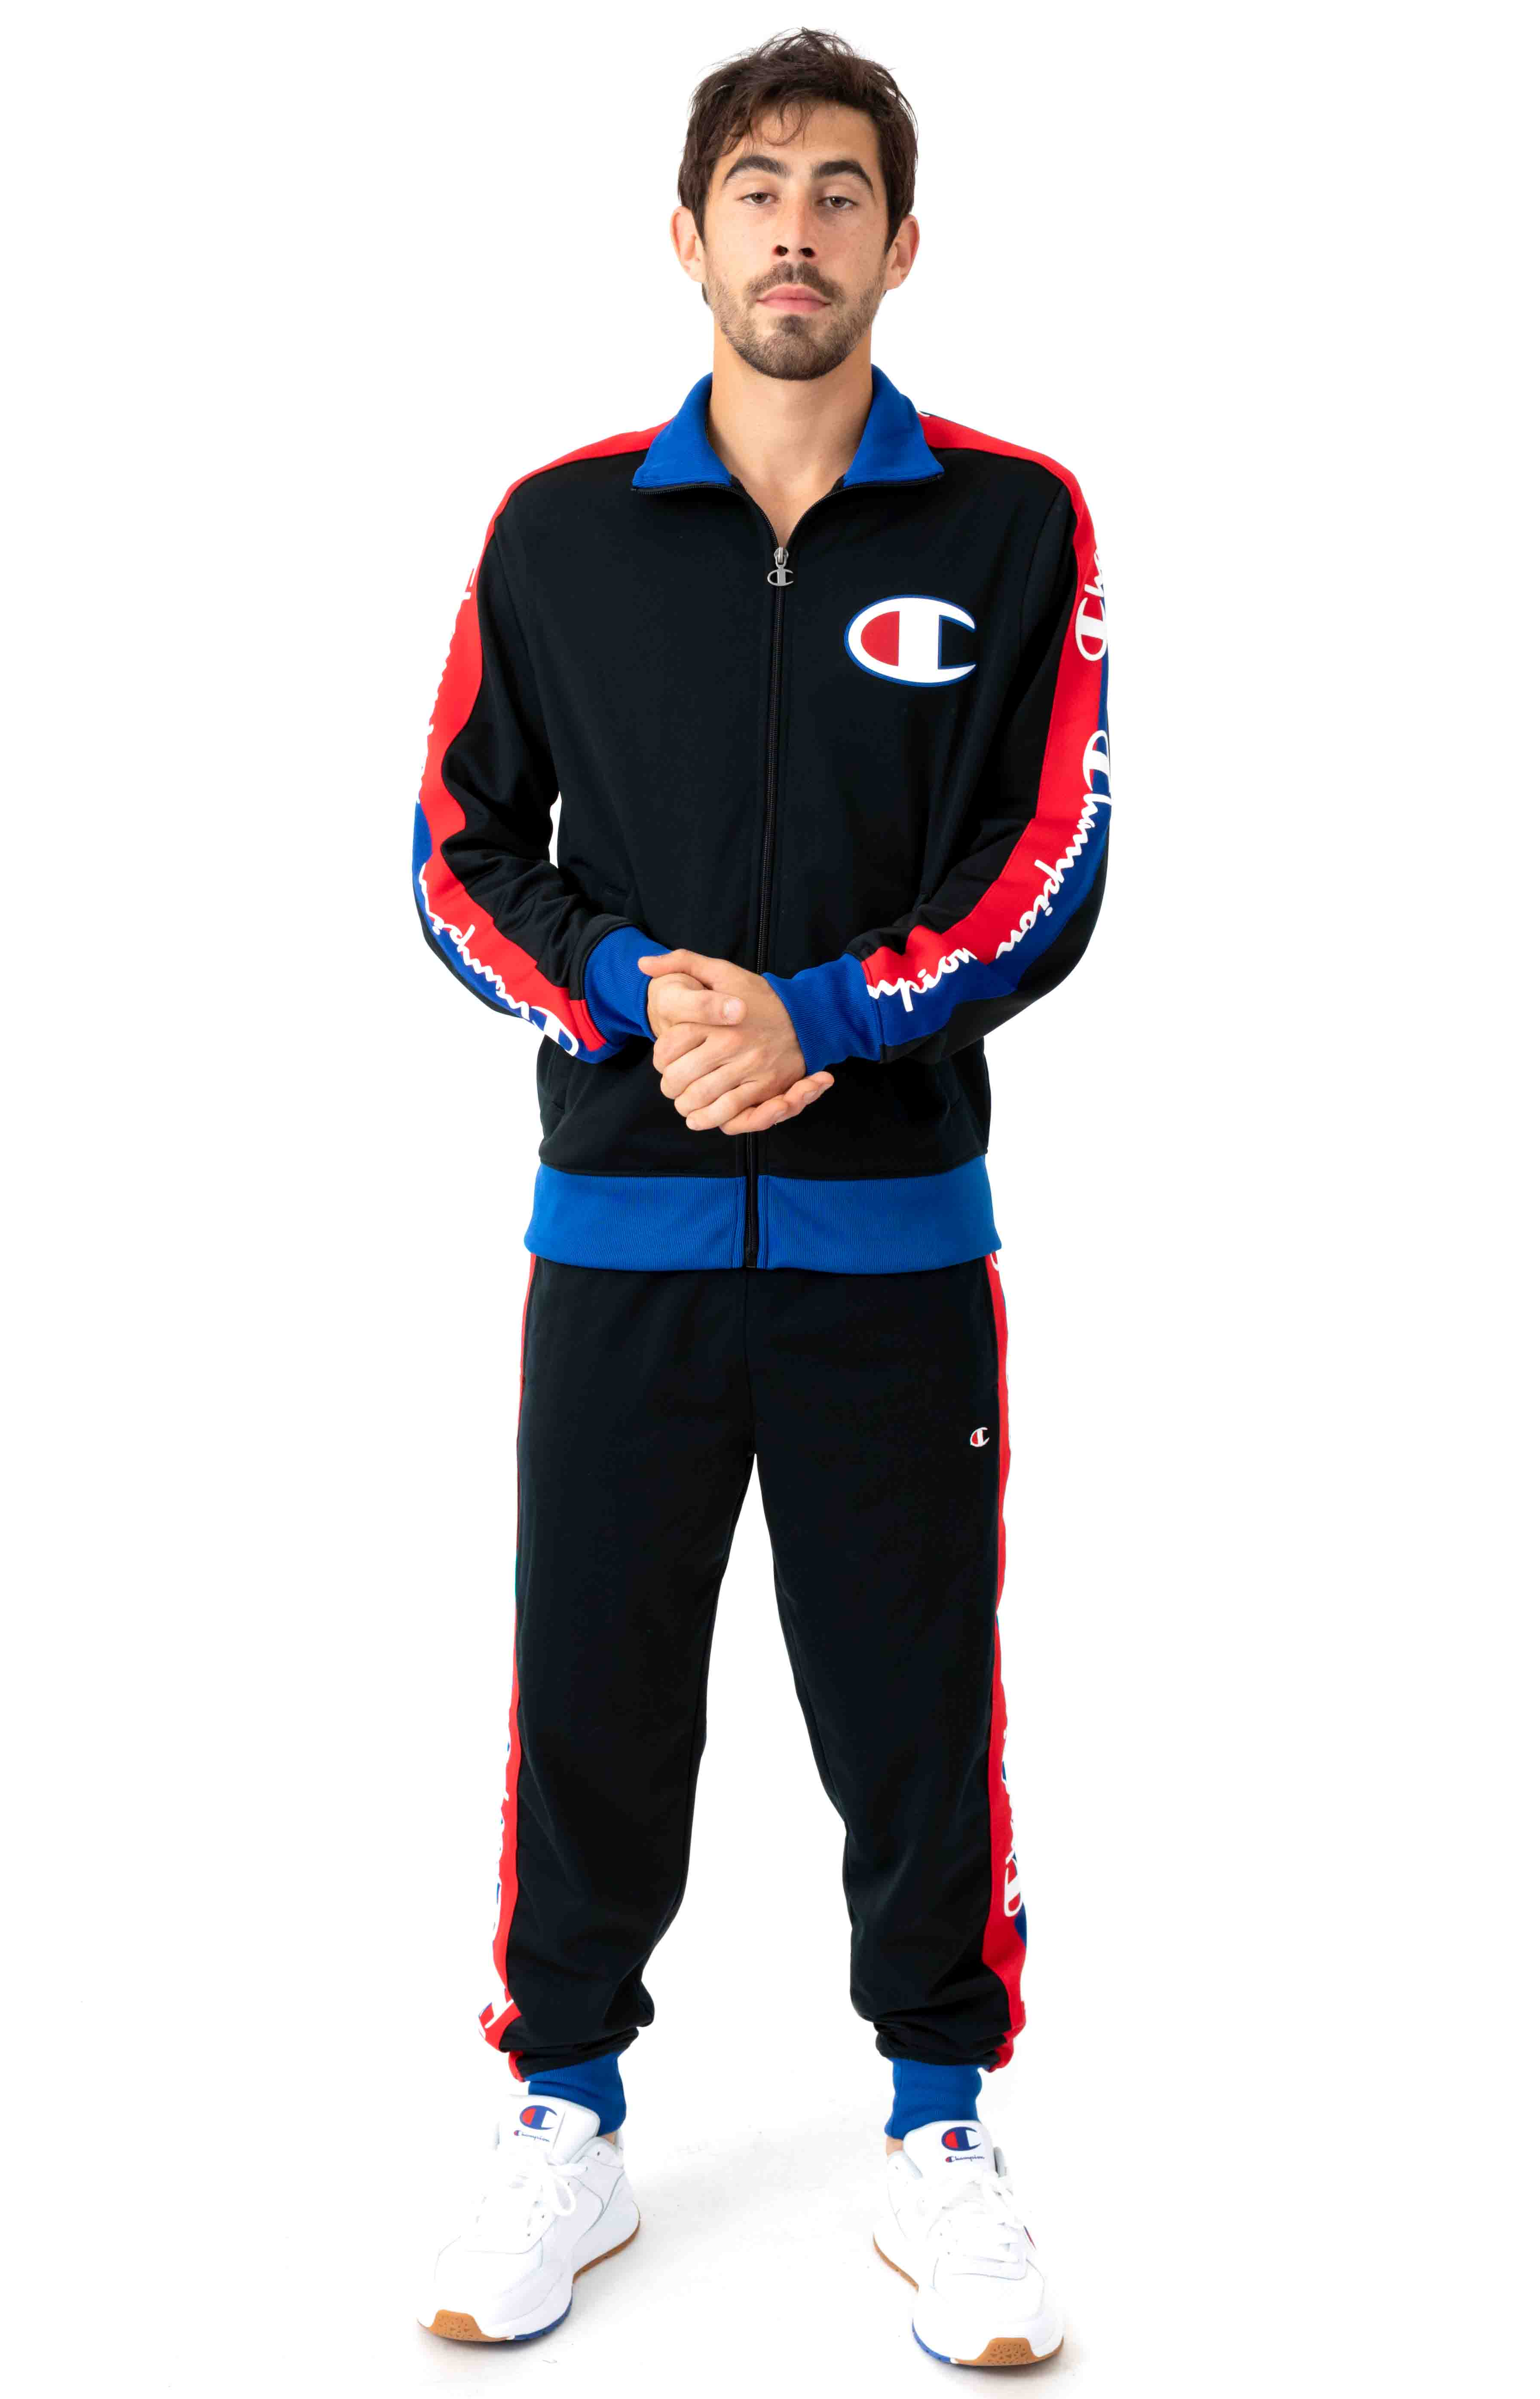 Tricot Track Jacket w/ Champion Taping - Black/Surf The Web 4